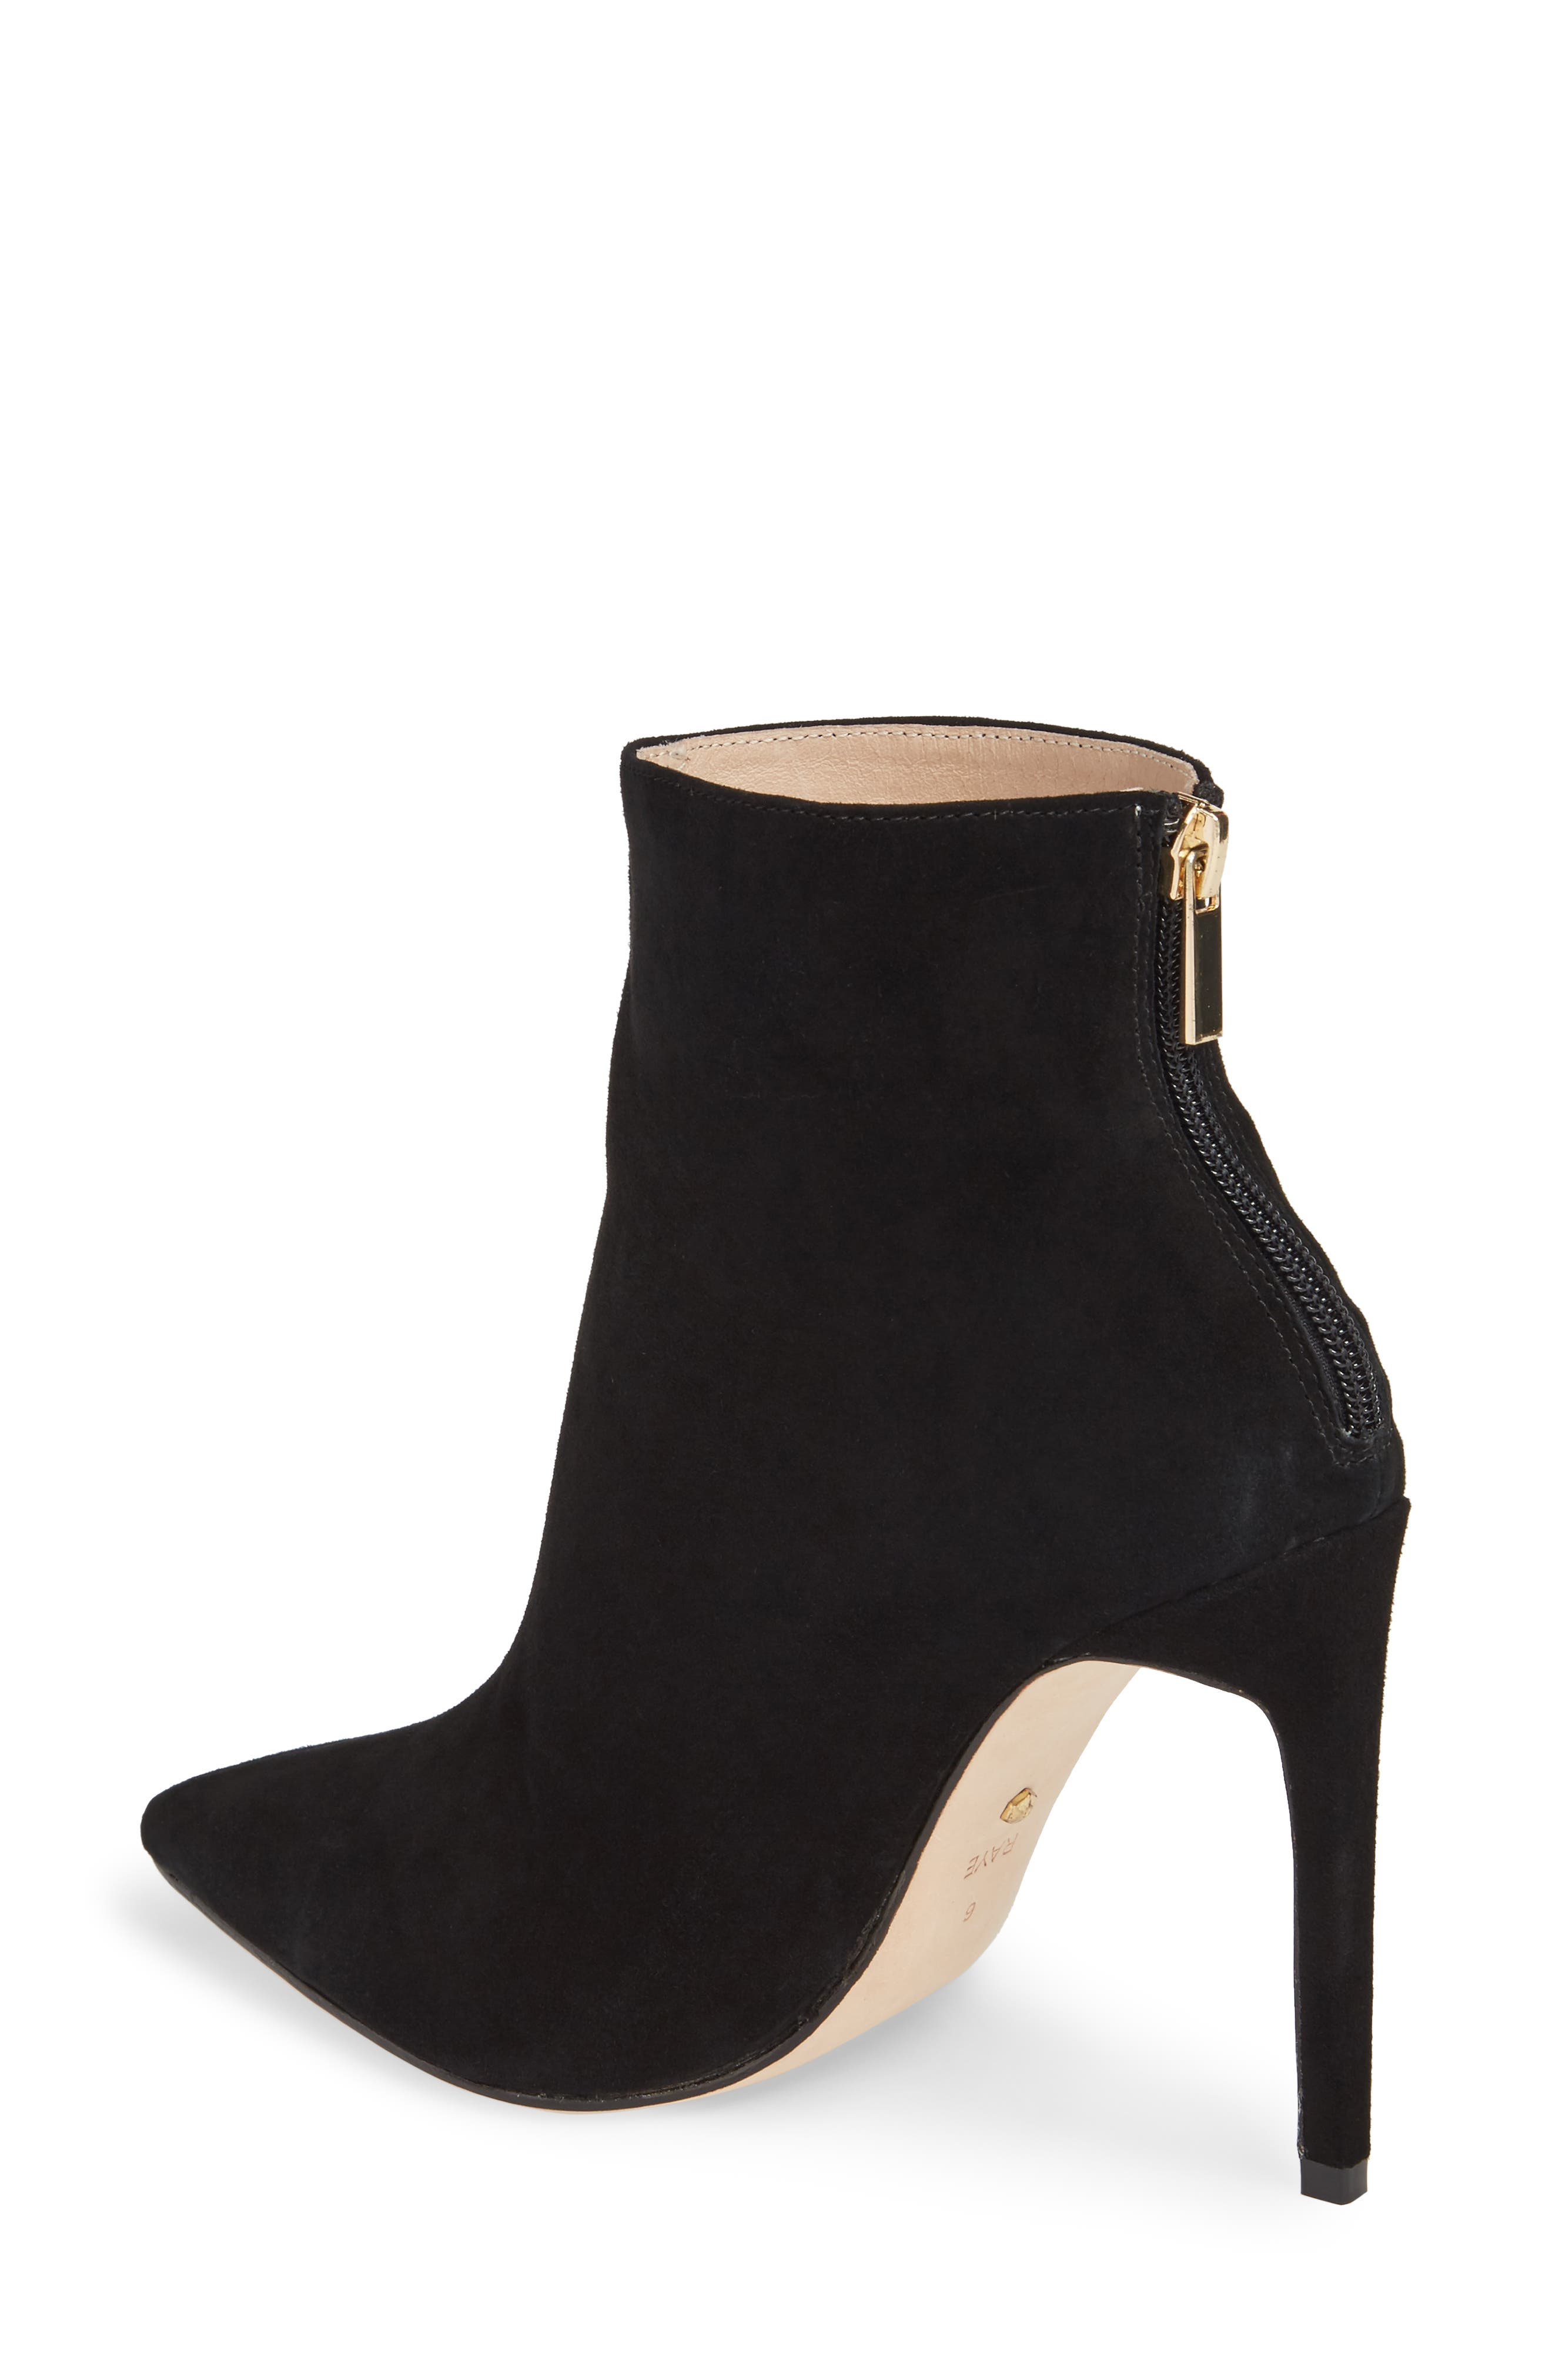 Tati Pointy Toe Bootie,                             Alternate thumbnail 2, color,                             Black Suede